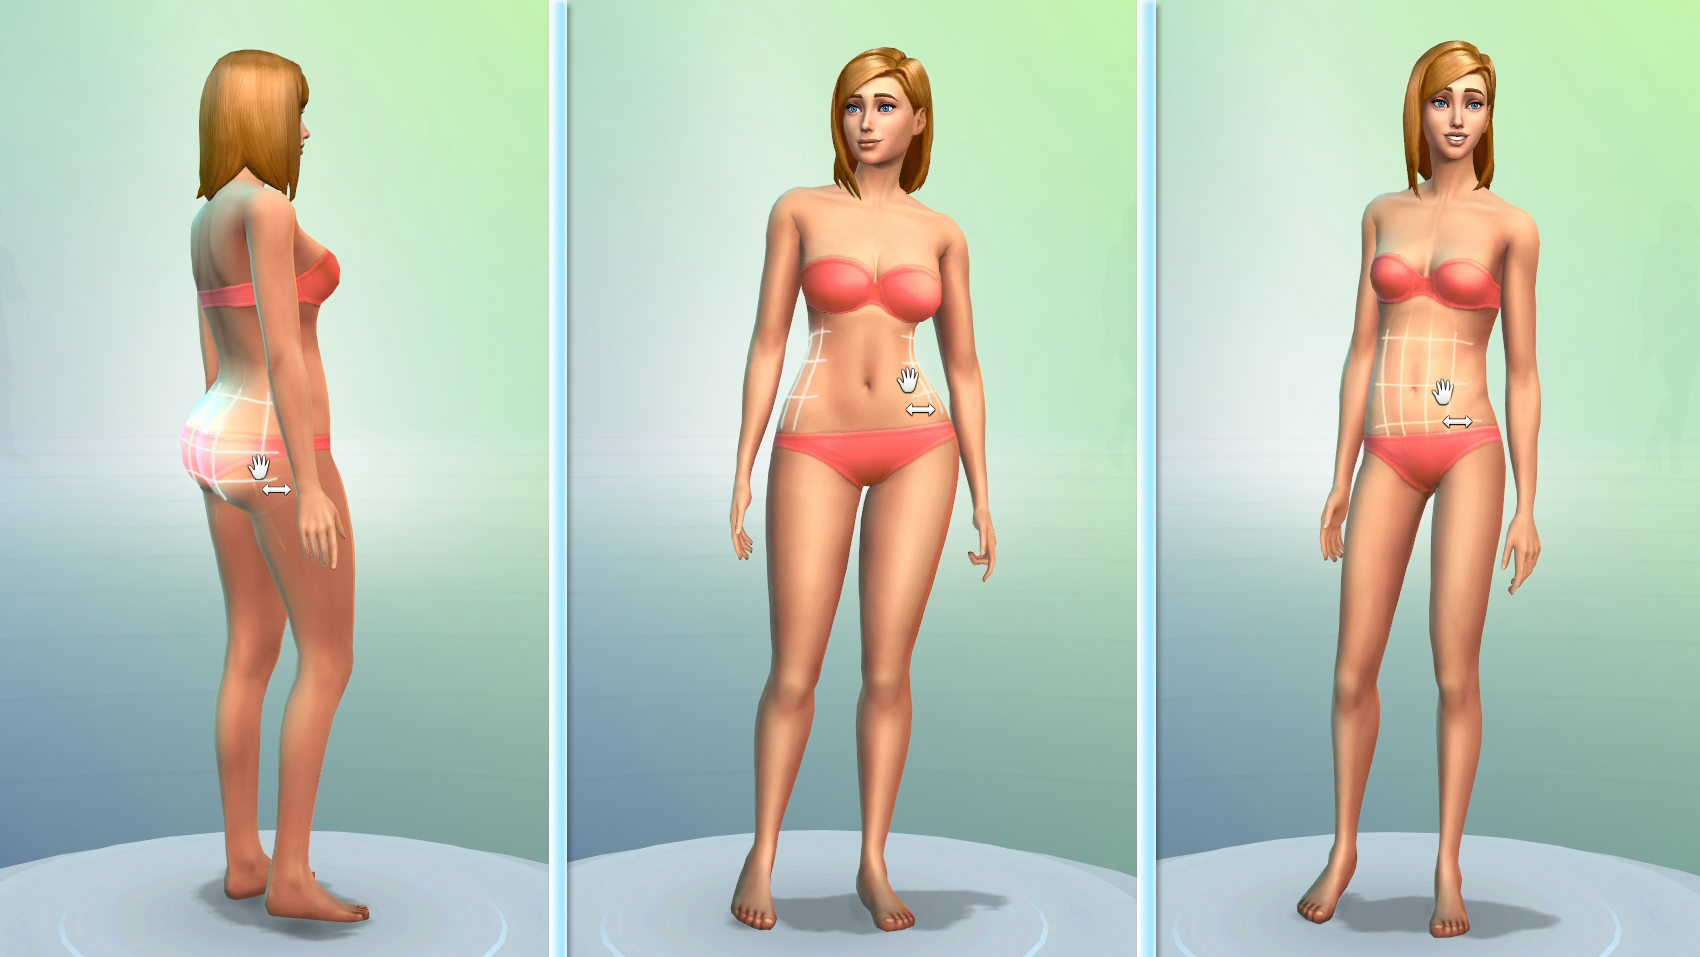 The sim 4 - Character women